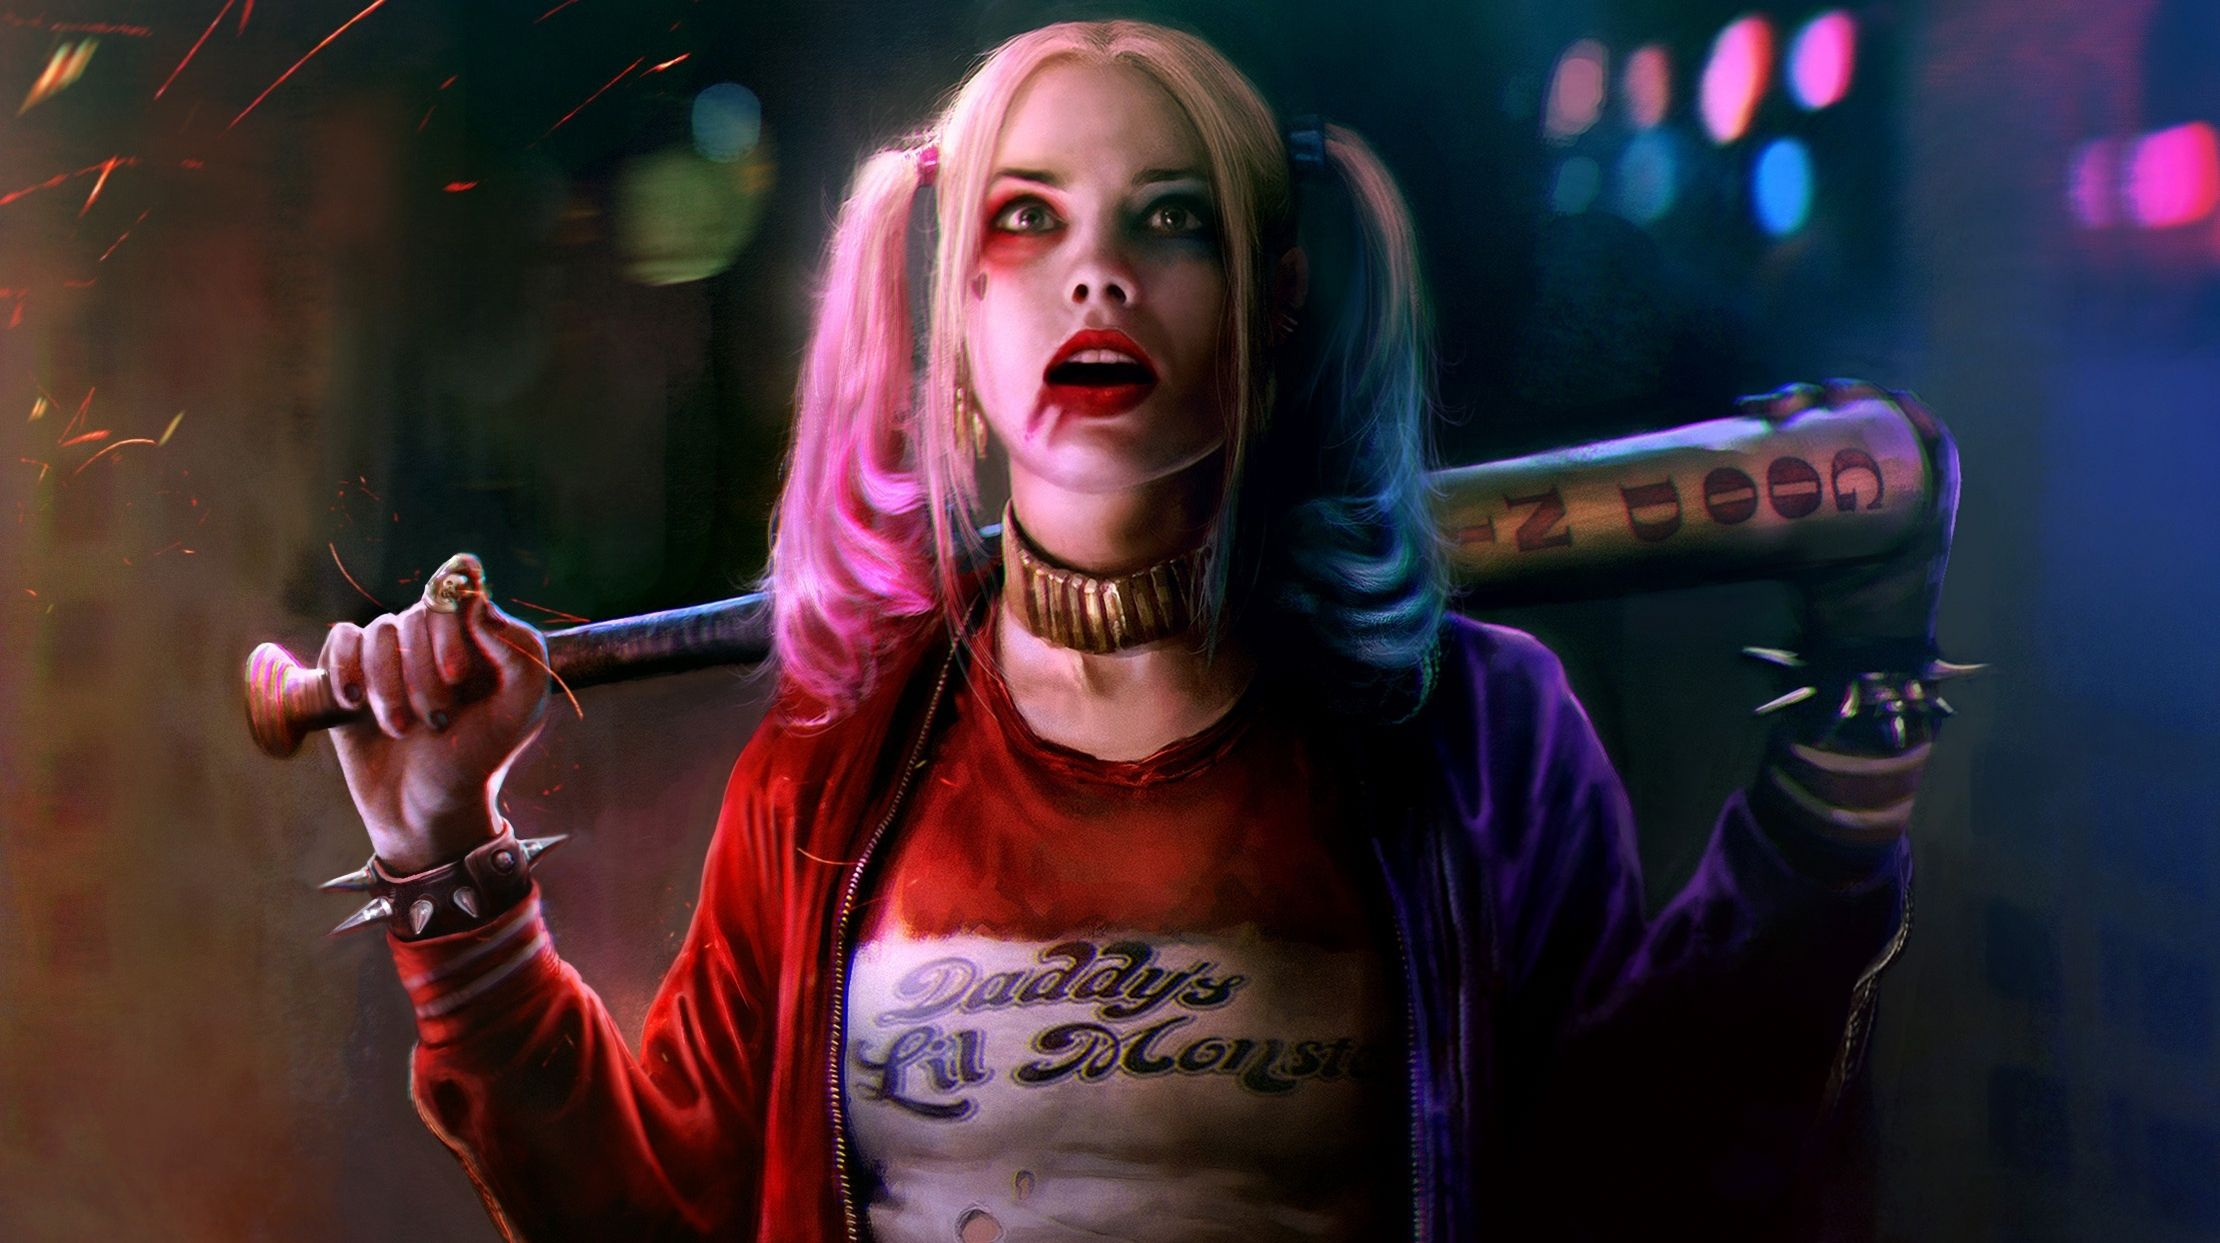 Harley Quinn Suicide Squad Wallpapers Top Free Harley Quinn